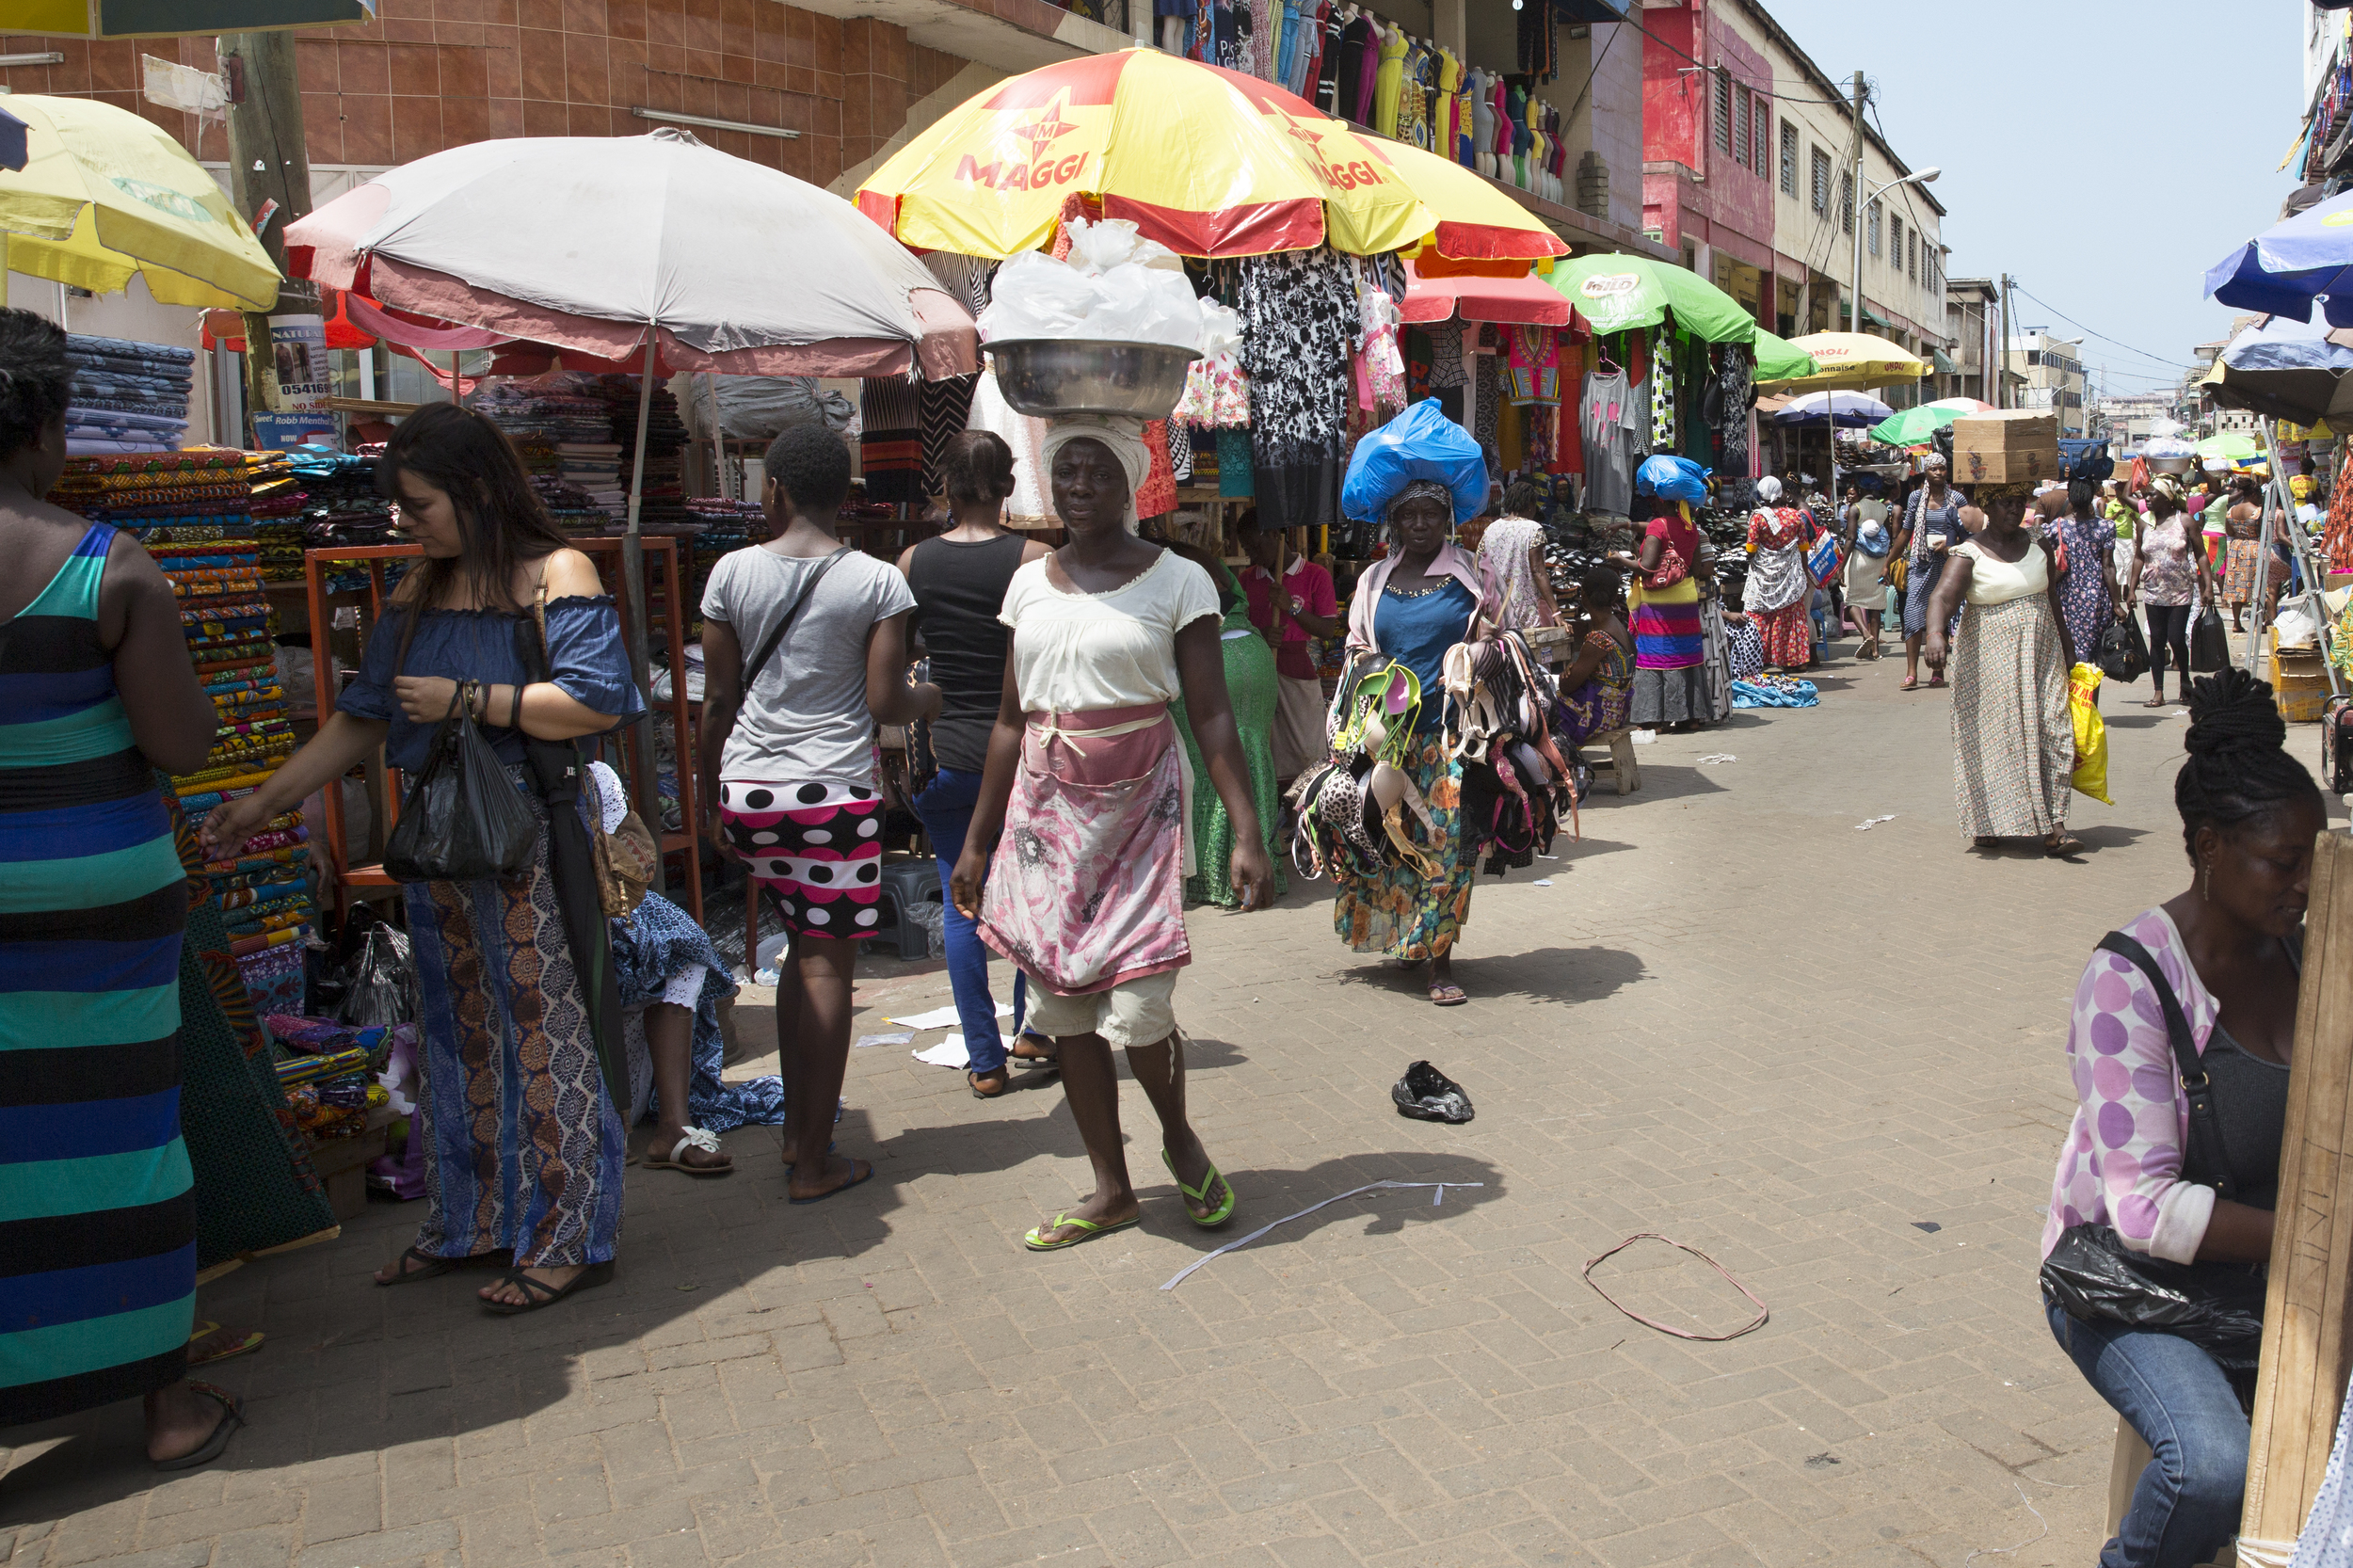 A small section of Makola Market. You can see Mariana in the patterned pants on the left!